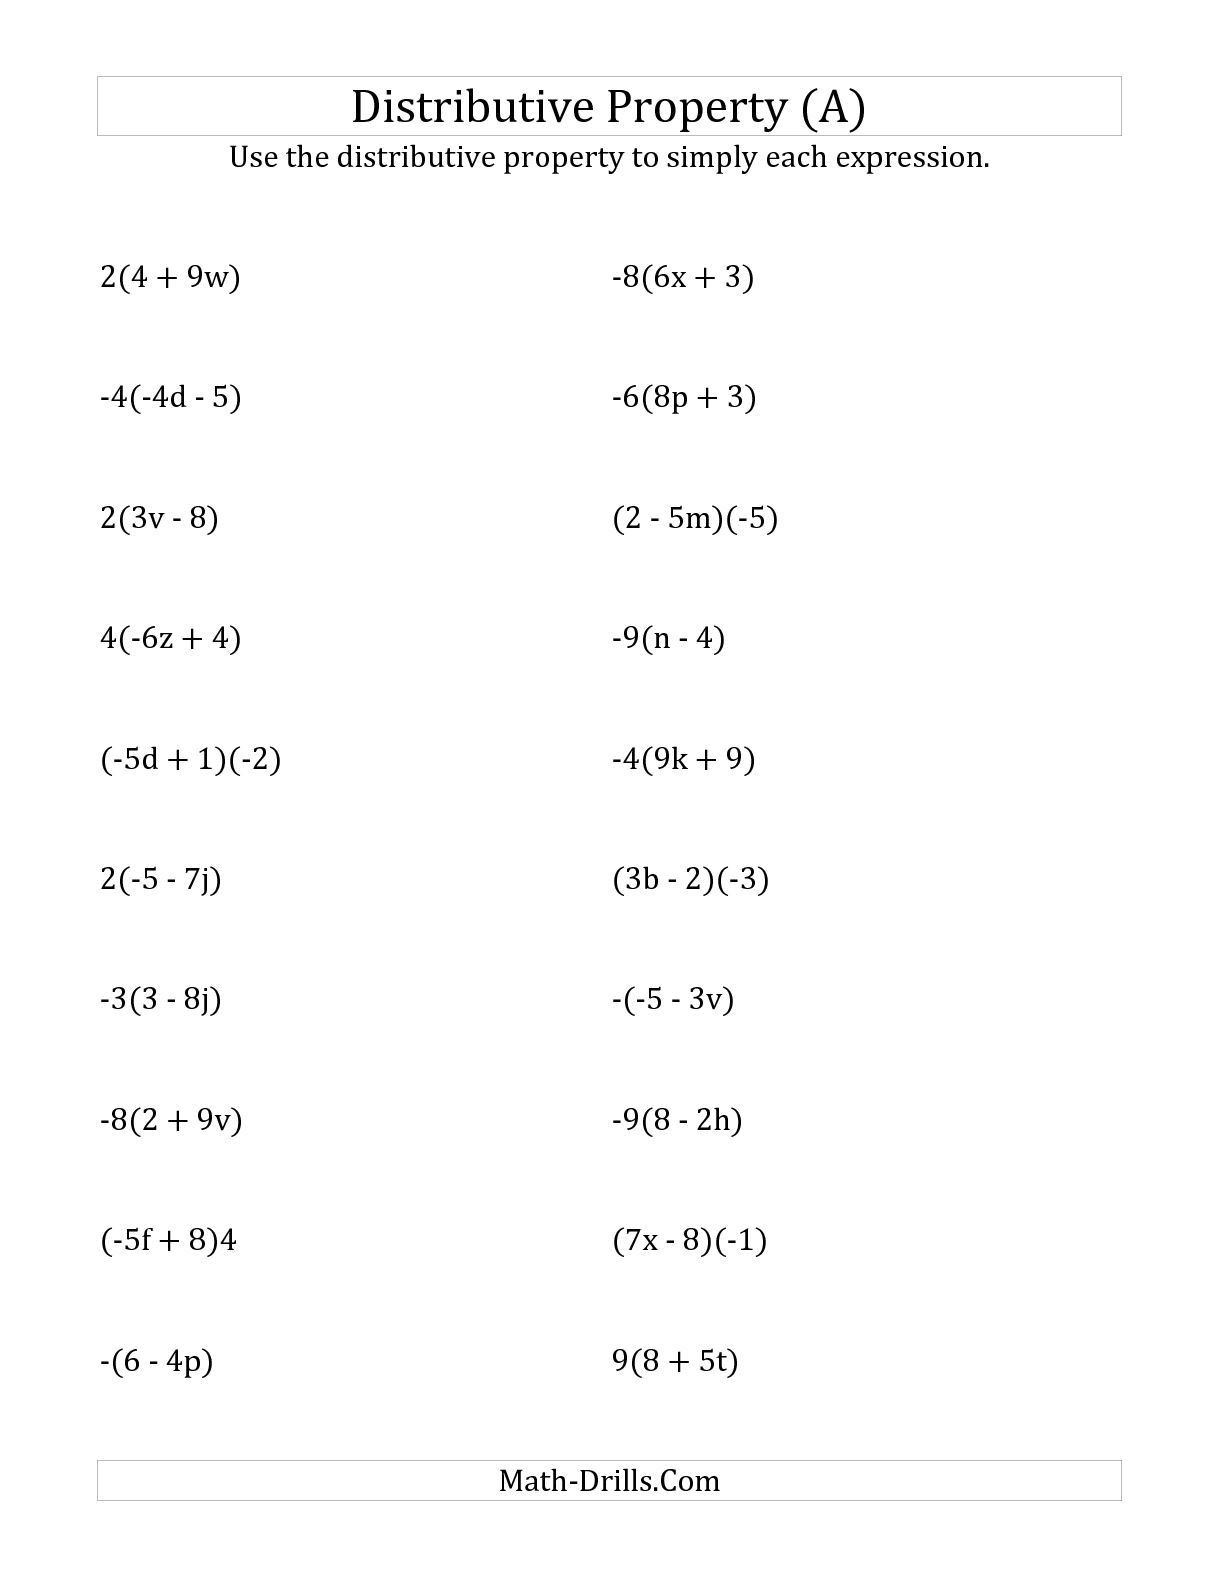 Distributive Property 4th Grade Worksheets the Using the Distributive Property Answers Do Not Include